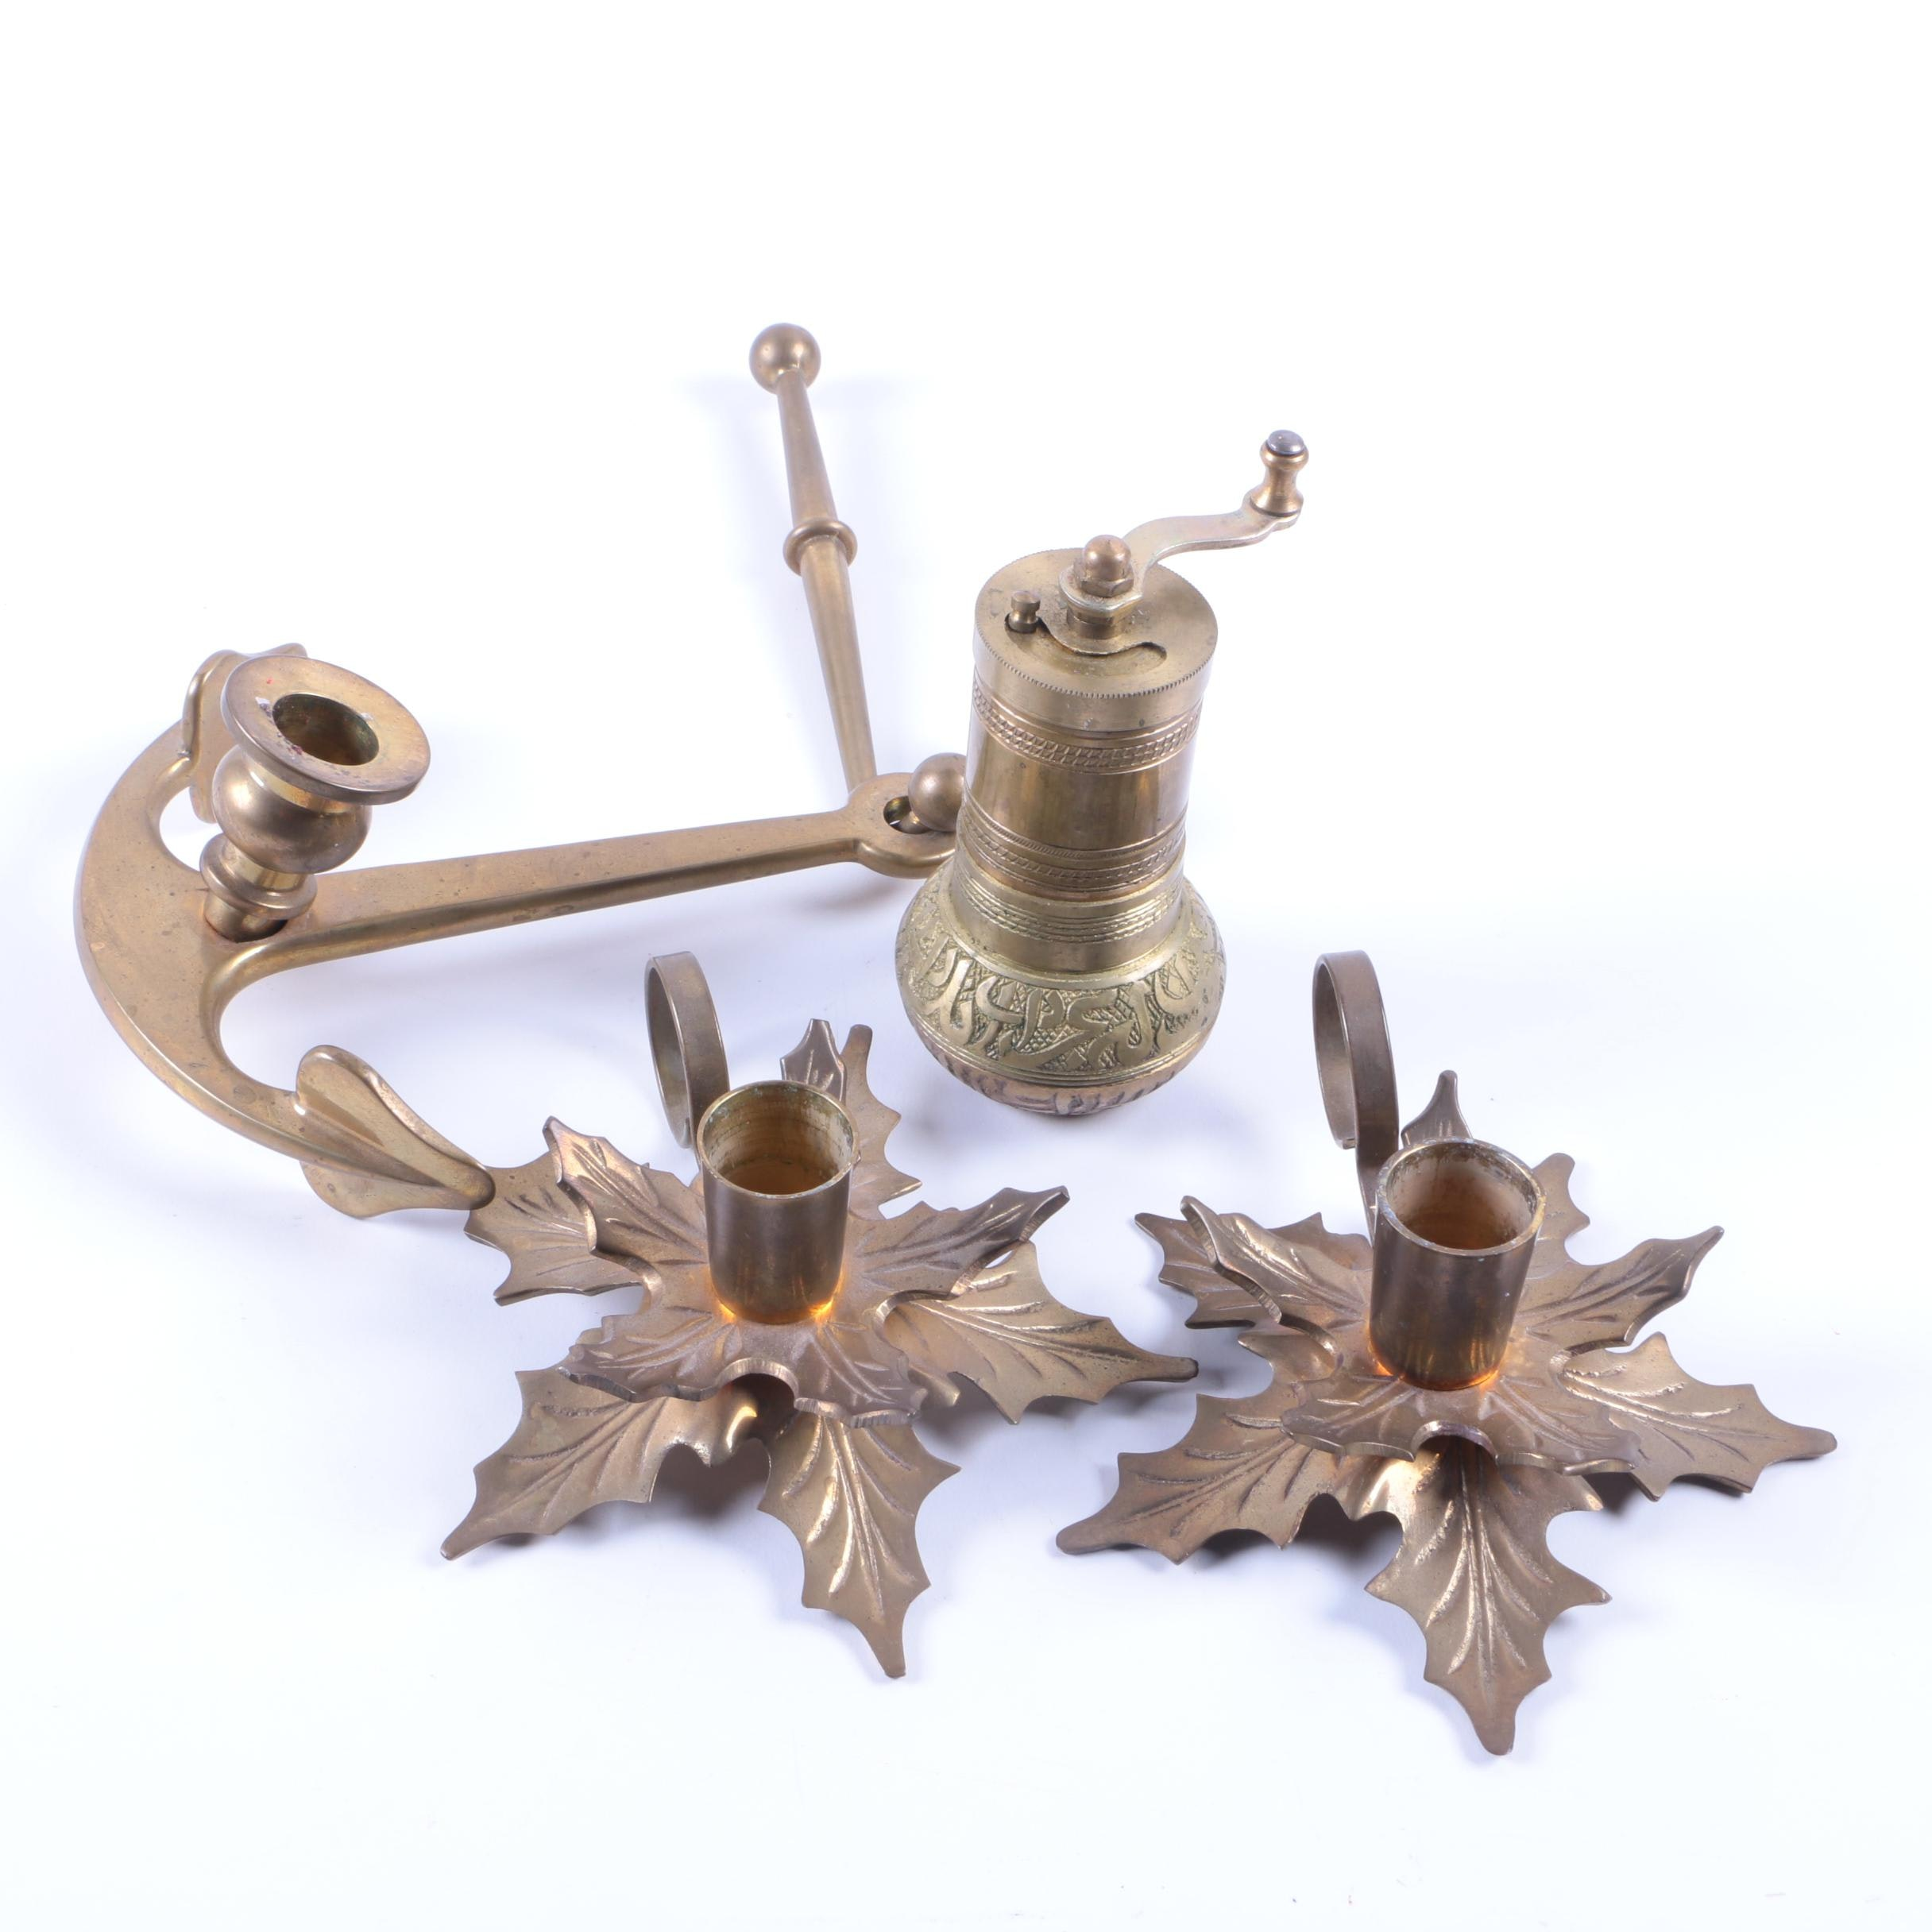 Brass Candleholders and Spice Grinder